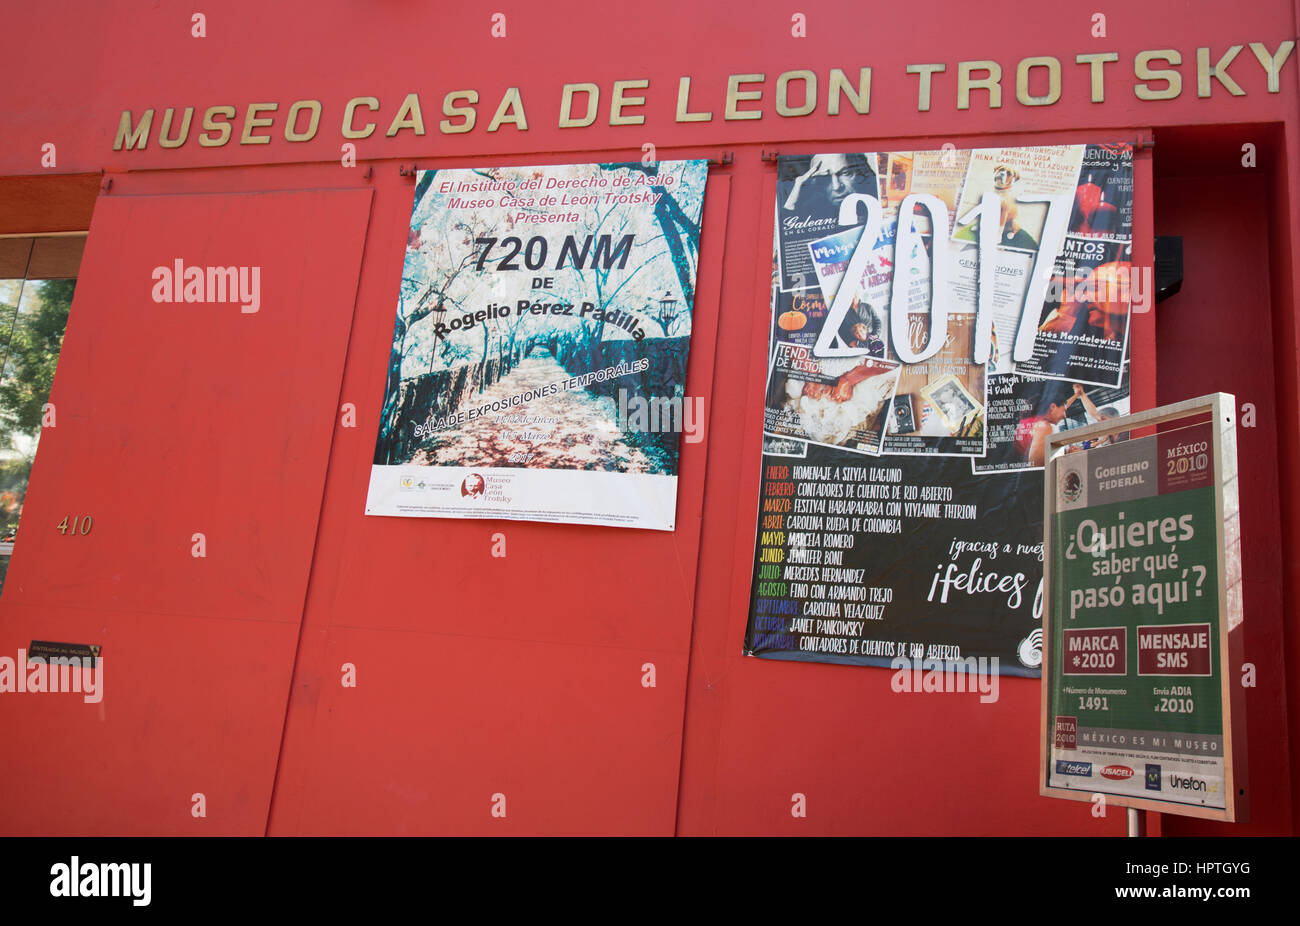 Mexico city, Mexico. Friday 24th February 2017. `Museum at Leon Trotsky's house in Mexico city mounting exhibition - Stock Image